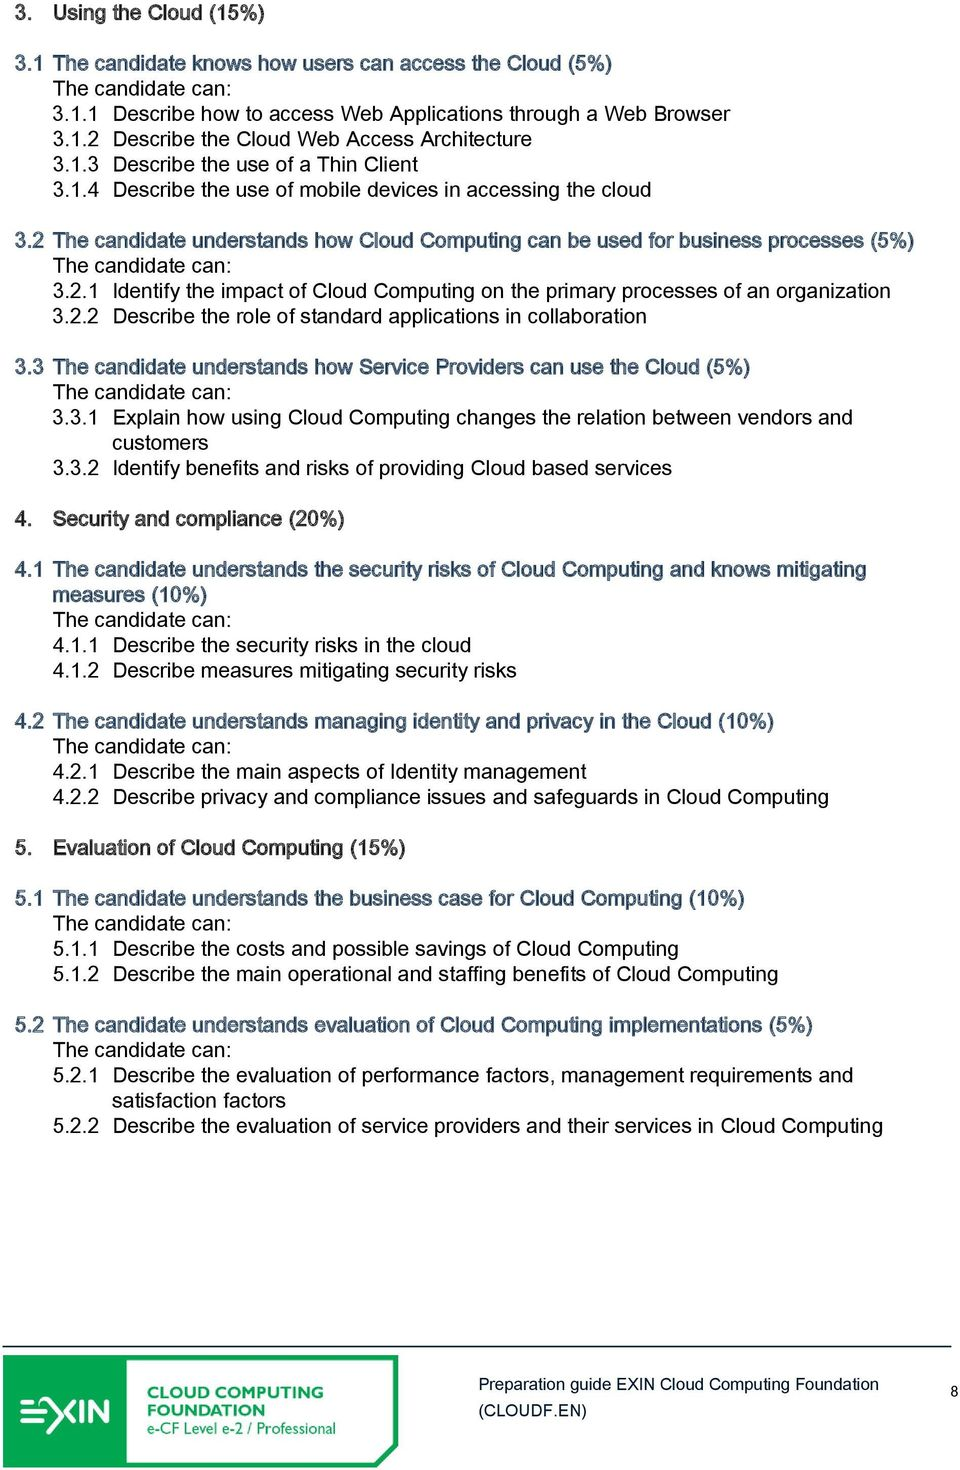 2.2 Describe the role of standard applications in collaboration 3.3 The candidate understands how Service Providers can use the Cloud (5%) 3.3.1 Explain how using Cloud Computing changes the relation between vendors and customers 3.